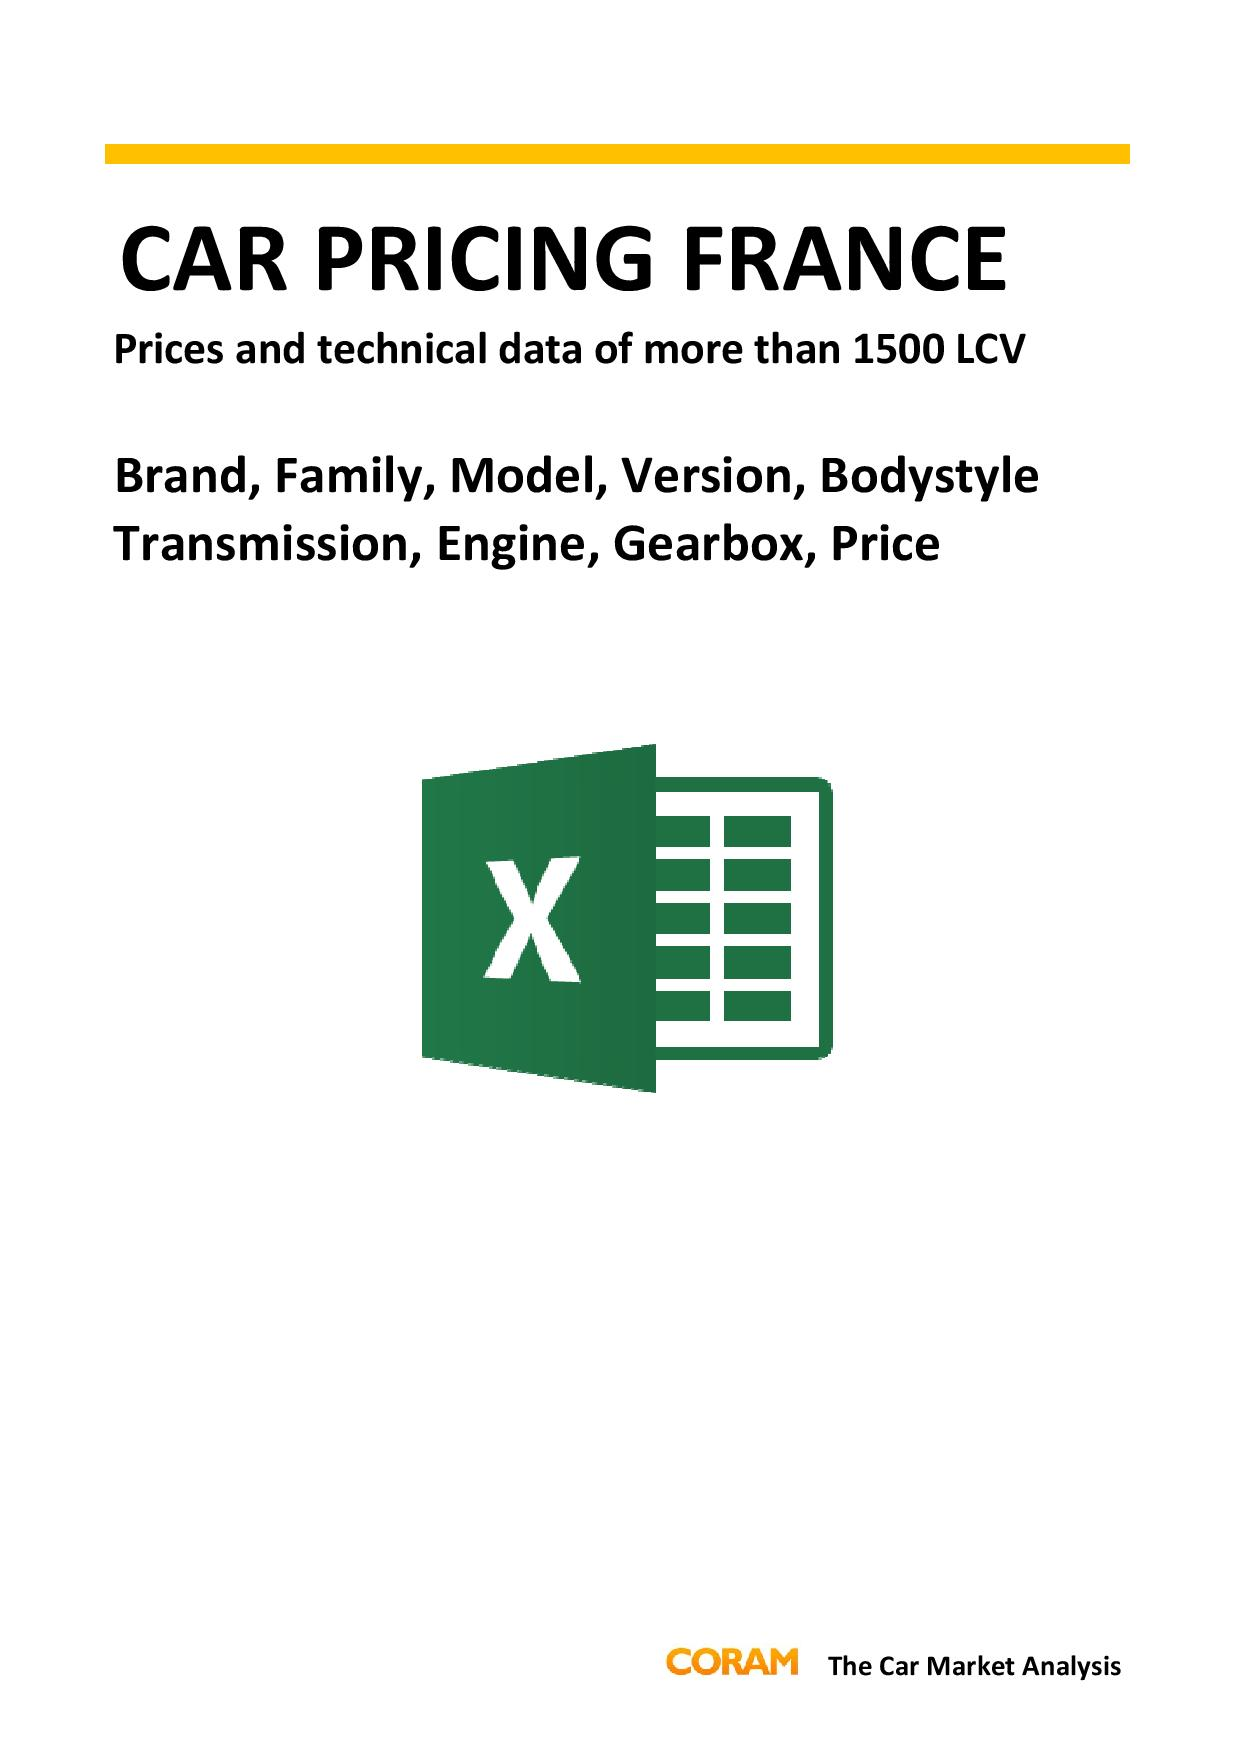 Car Pricing France LCV : July 2016